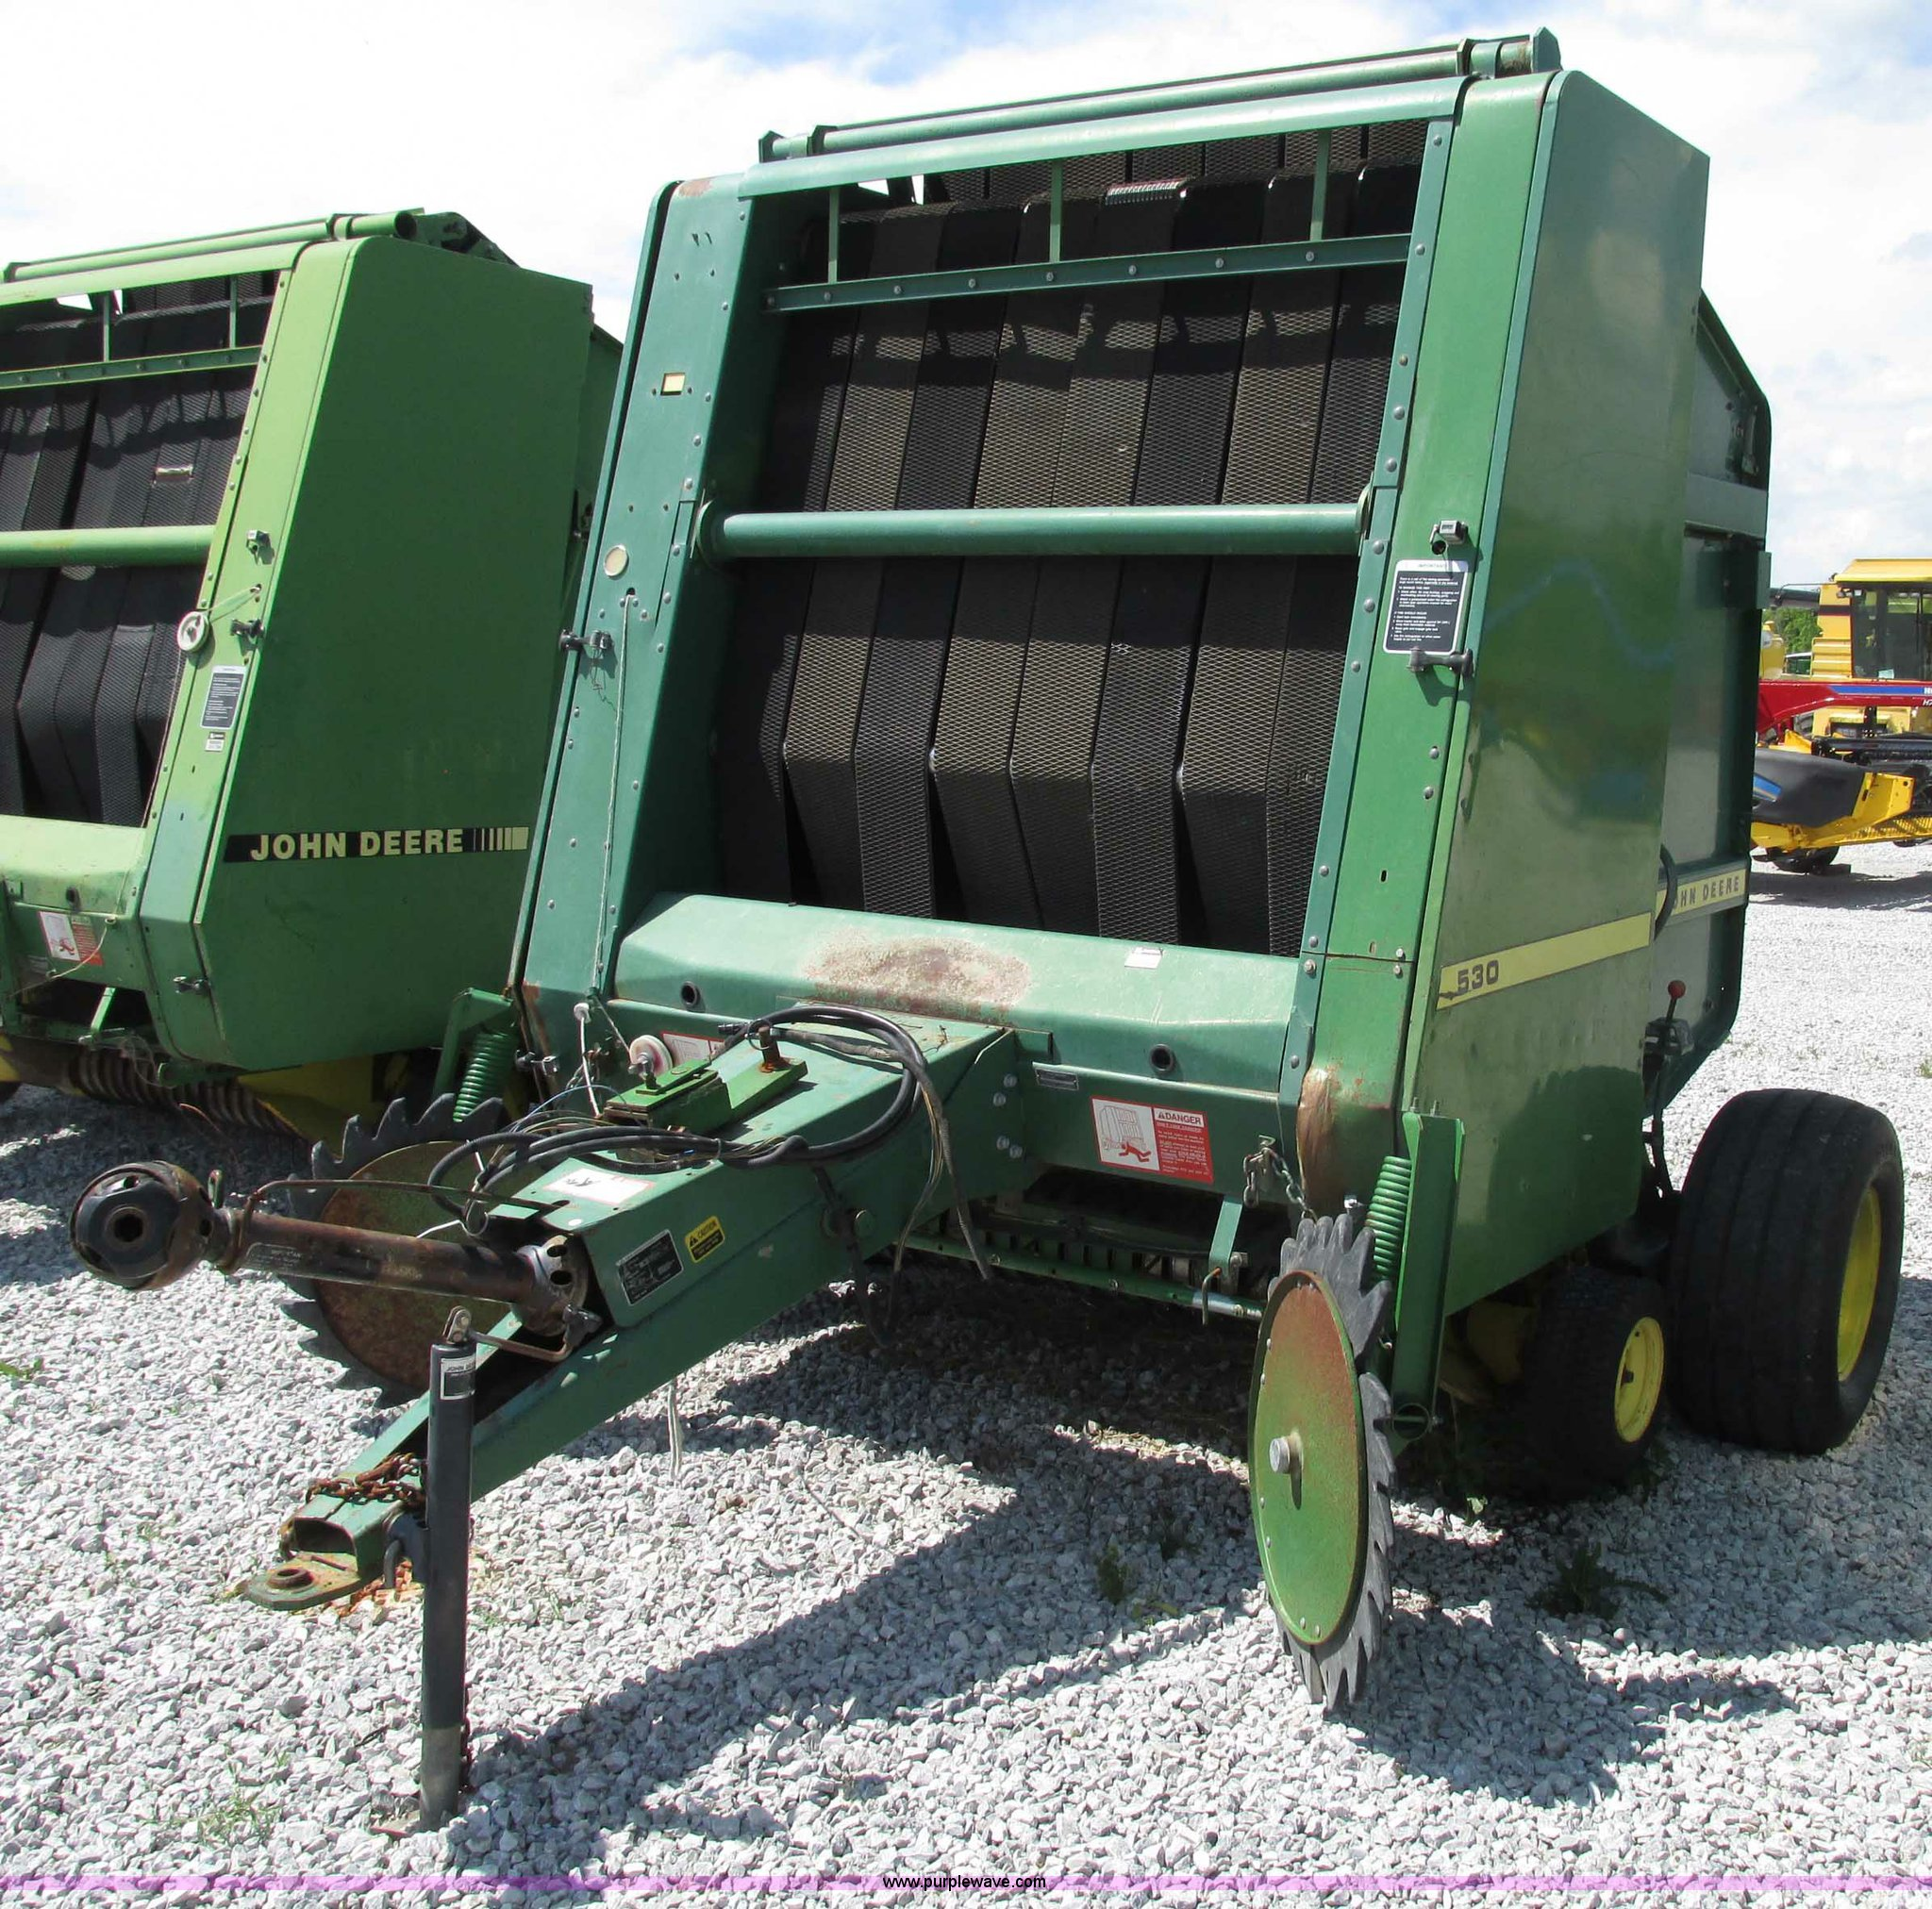 1988 John Deere 530 round baler | Item F7395 | SOLD! June 25